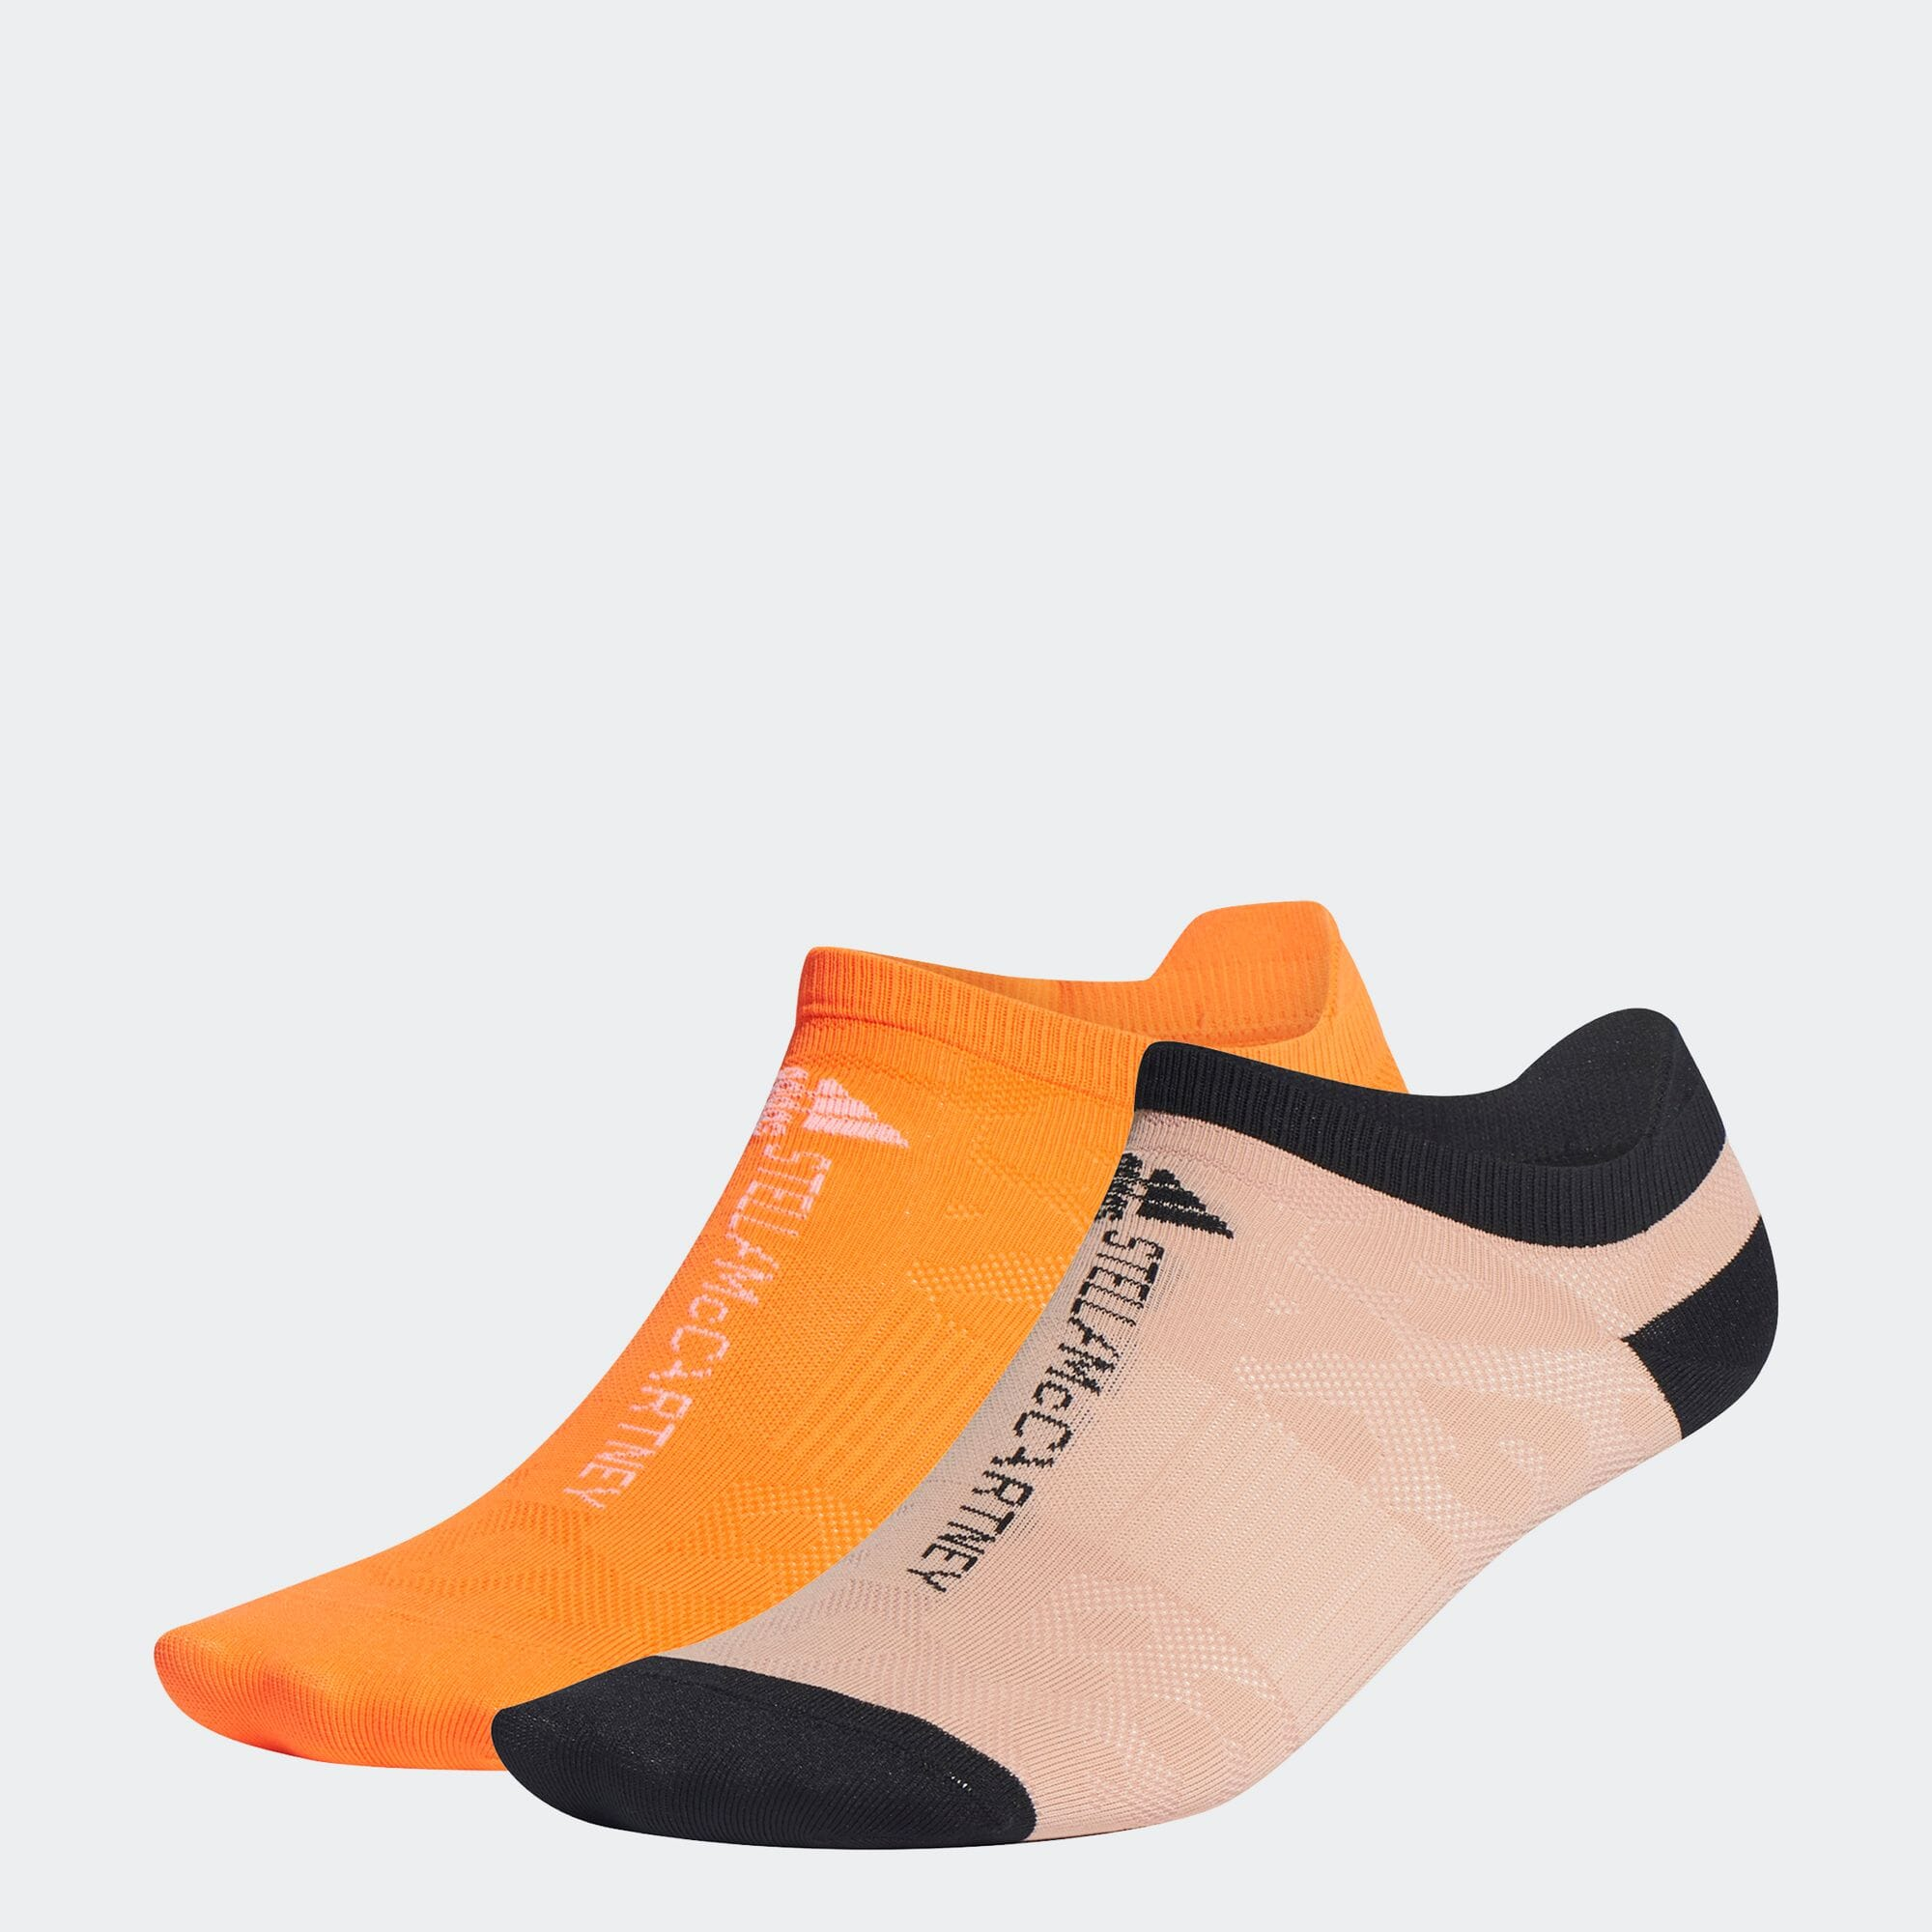 adidas by Stella McCartney ヒドゥンソックス / adidas by Stella McCartney Hidden Socks